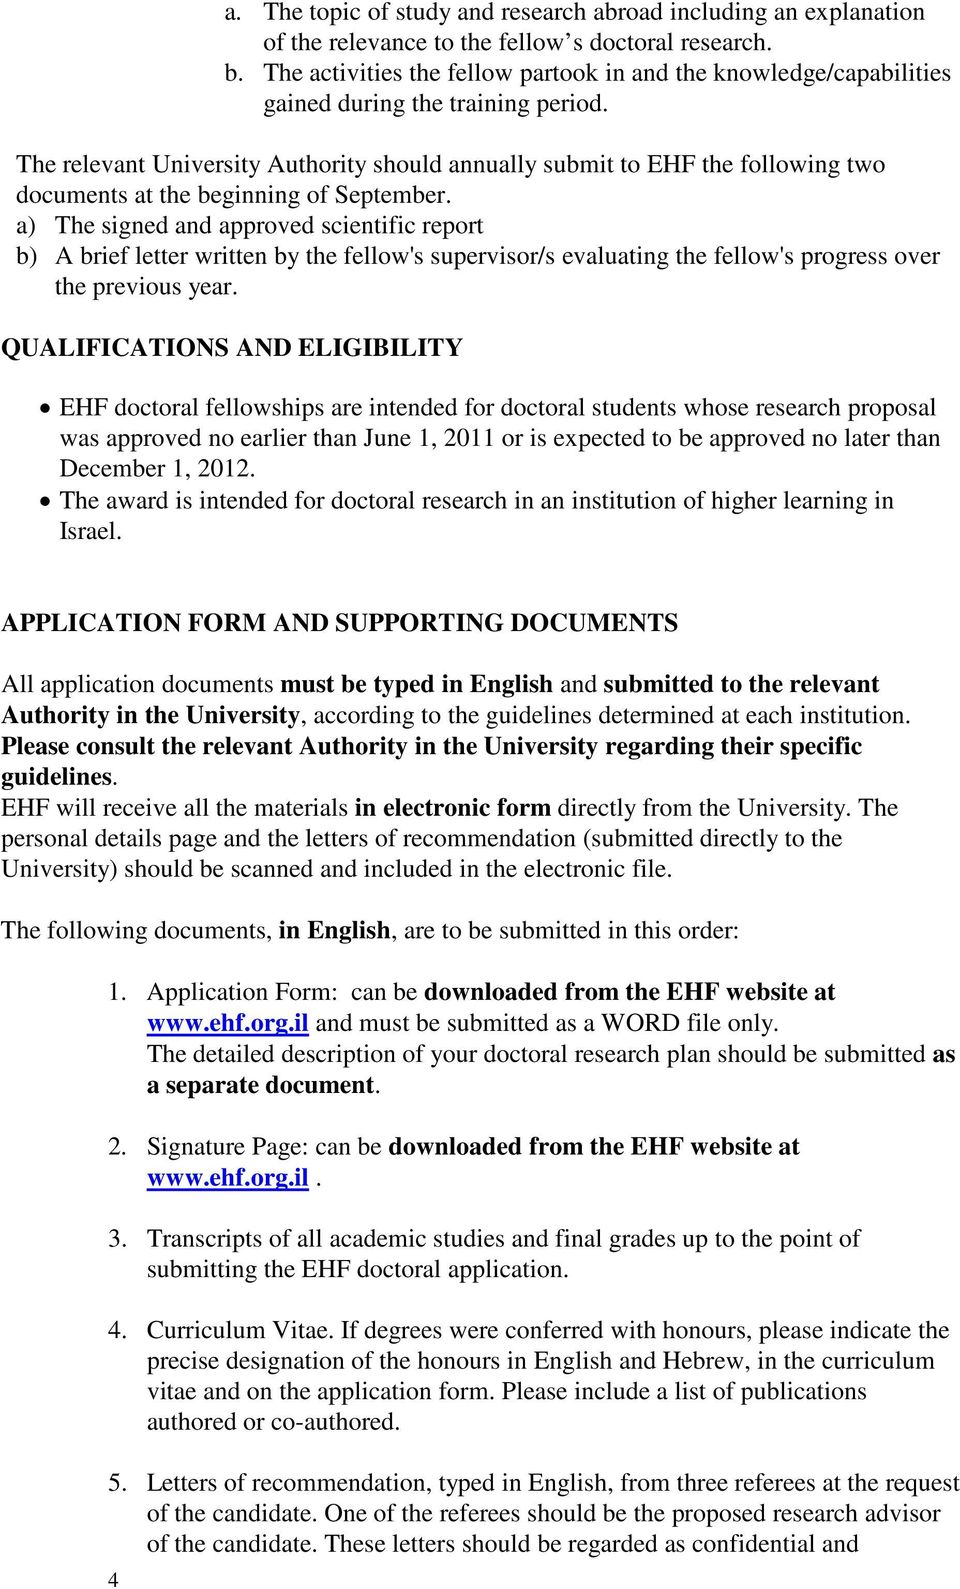 The relevant University Authority should annually submit to EHF the following two documents at the beginning of September.